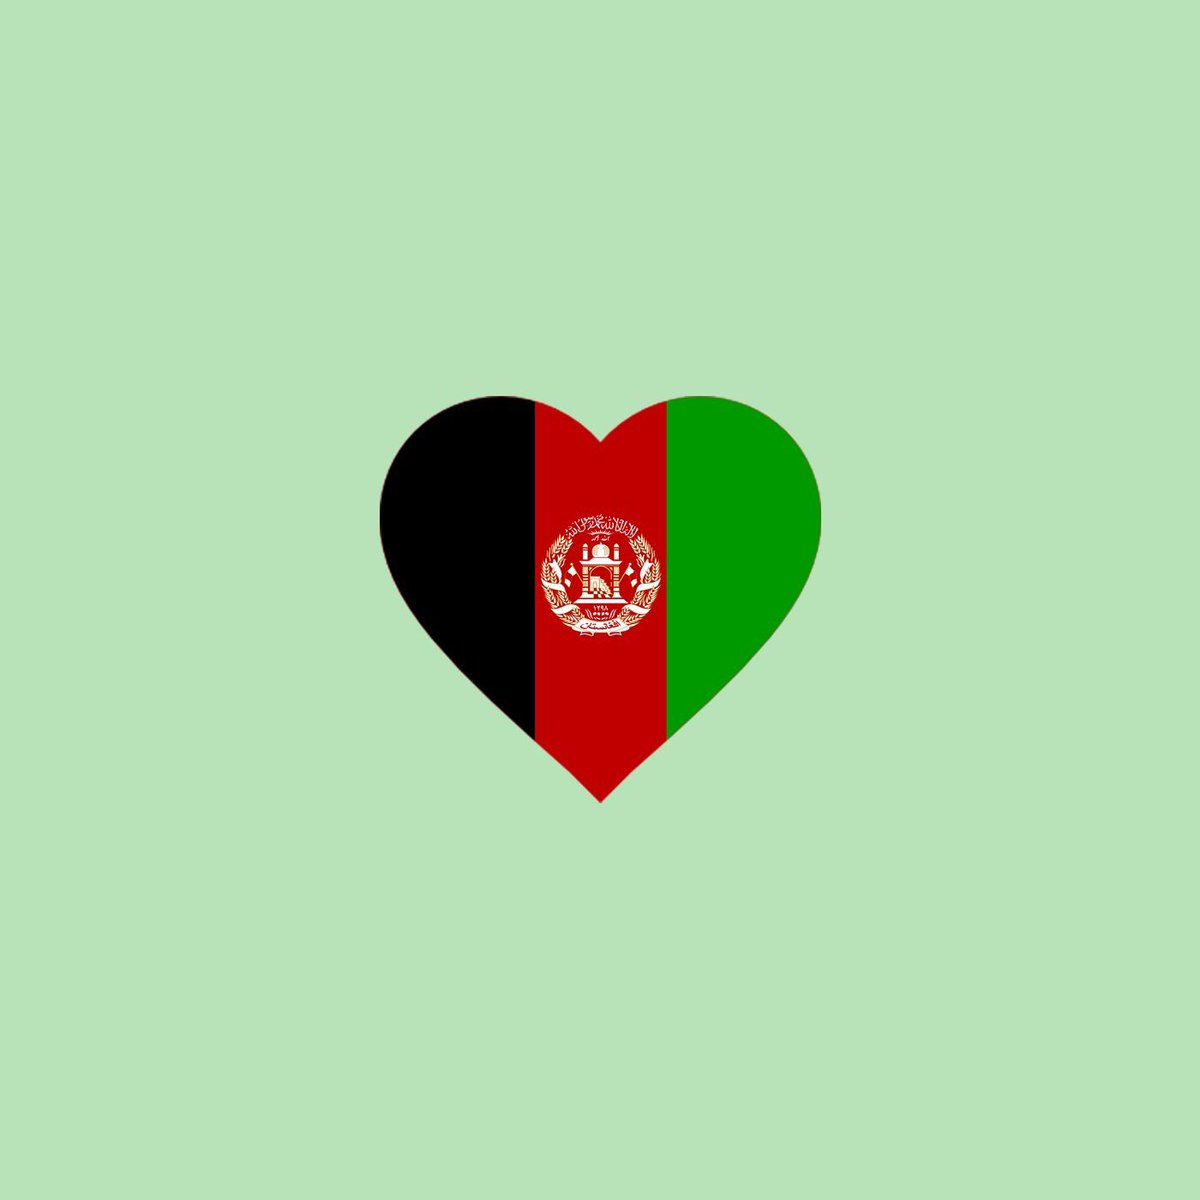 Our hearts are with Kabul, where a suicide attack killed 61 and wounded at least 200 #Kabul #Afghanistan